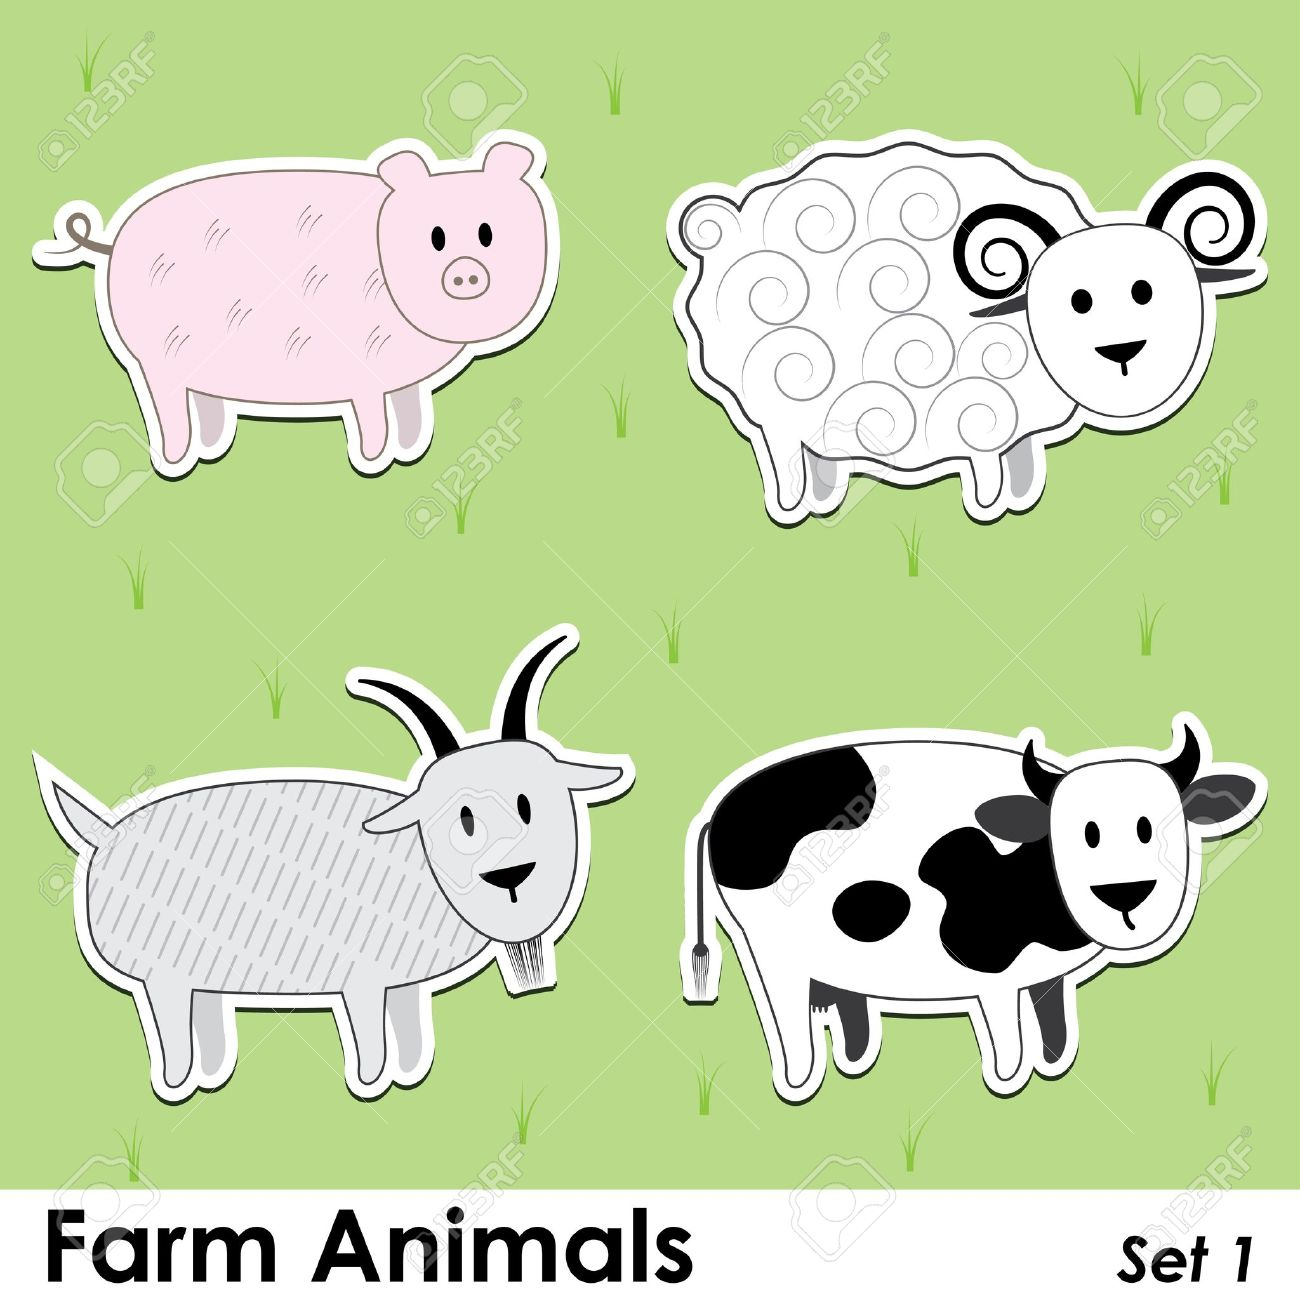 Farm Animals: Pig, Cow, Goat And Sheep Royalty Free Cliparts ...